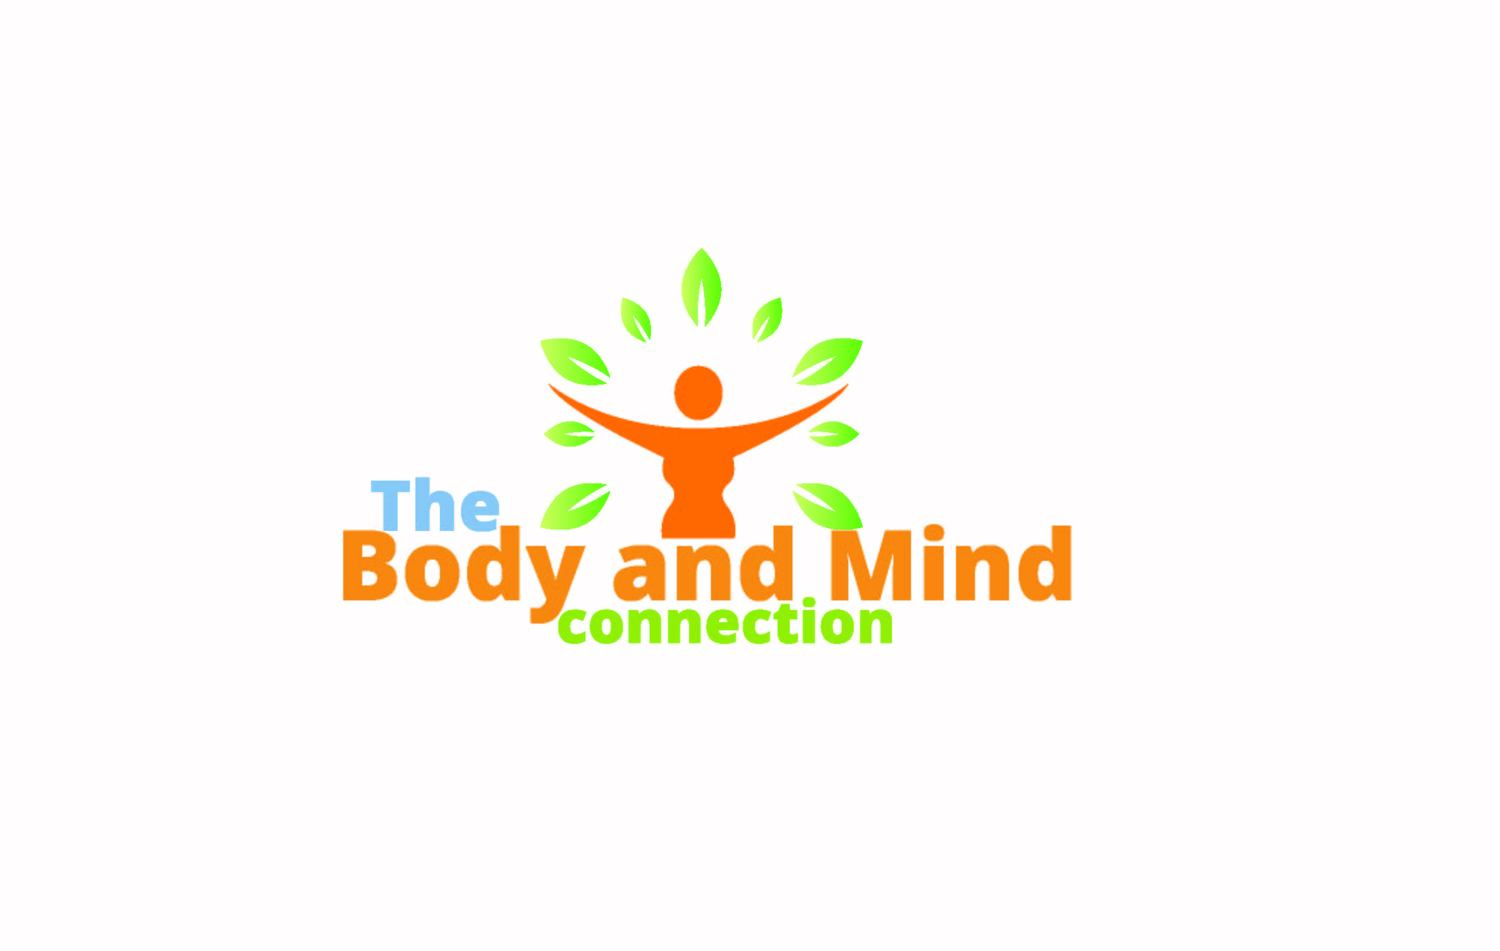 The Body and Mind Connection